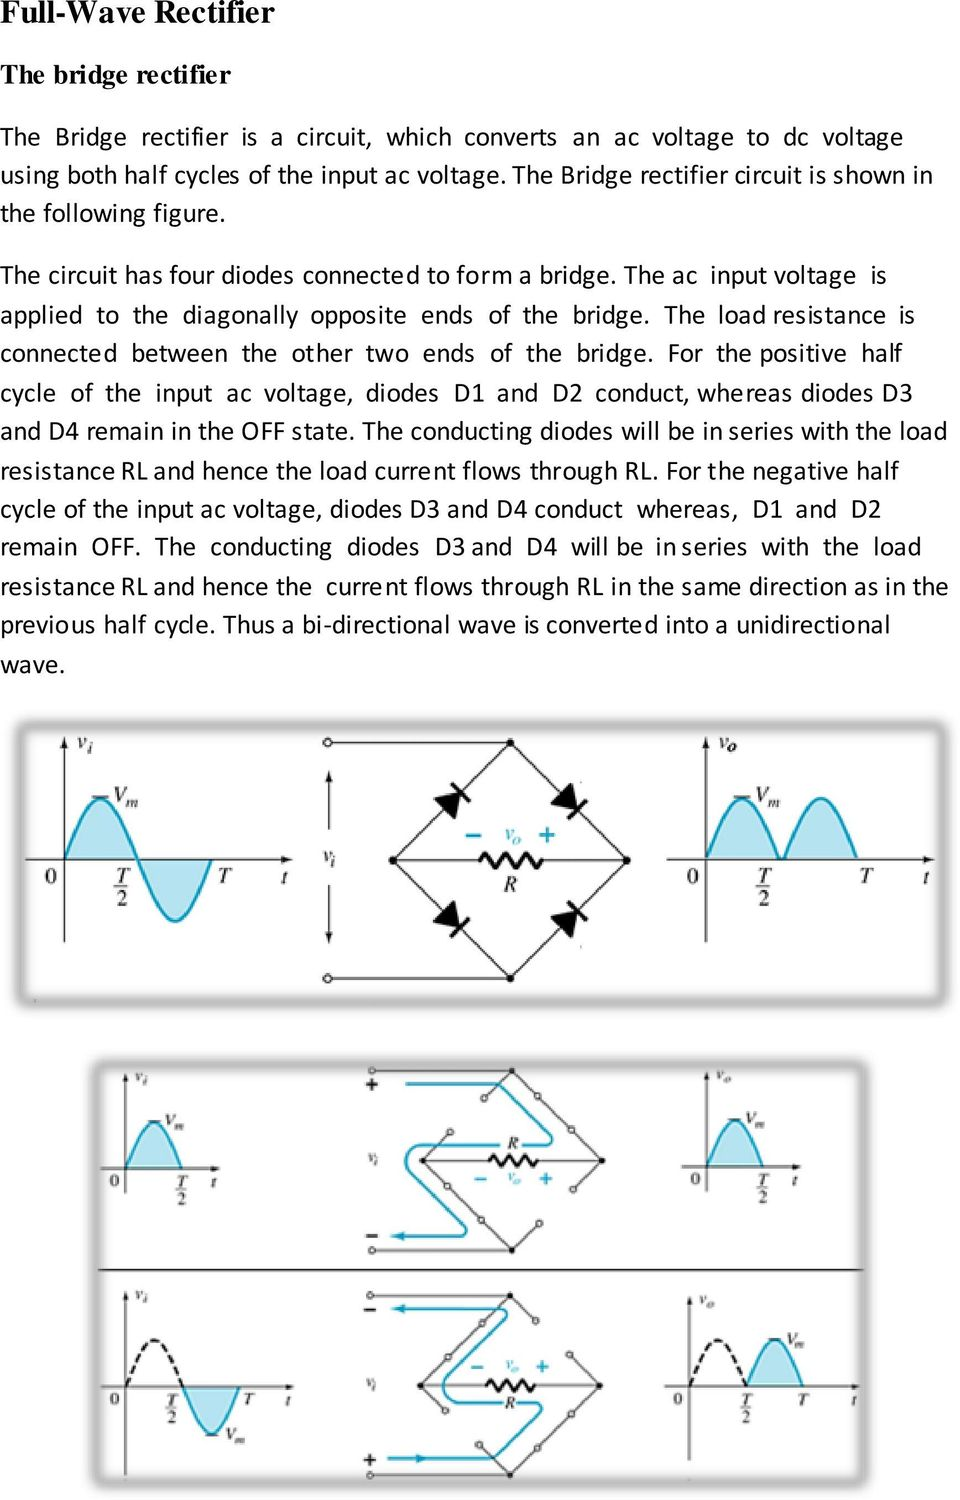 Half Wave Full Rectification Pdf Rectifier Connection Diagram The Load Resistance Is Connected Between Other Two Ends Of Bridge